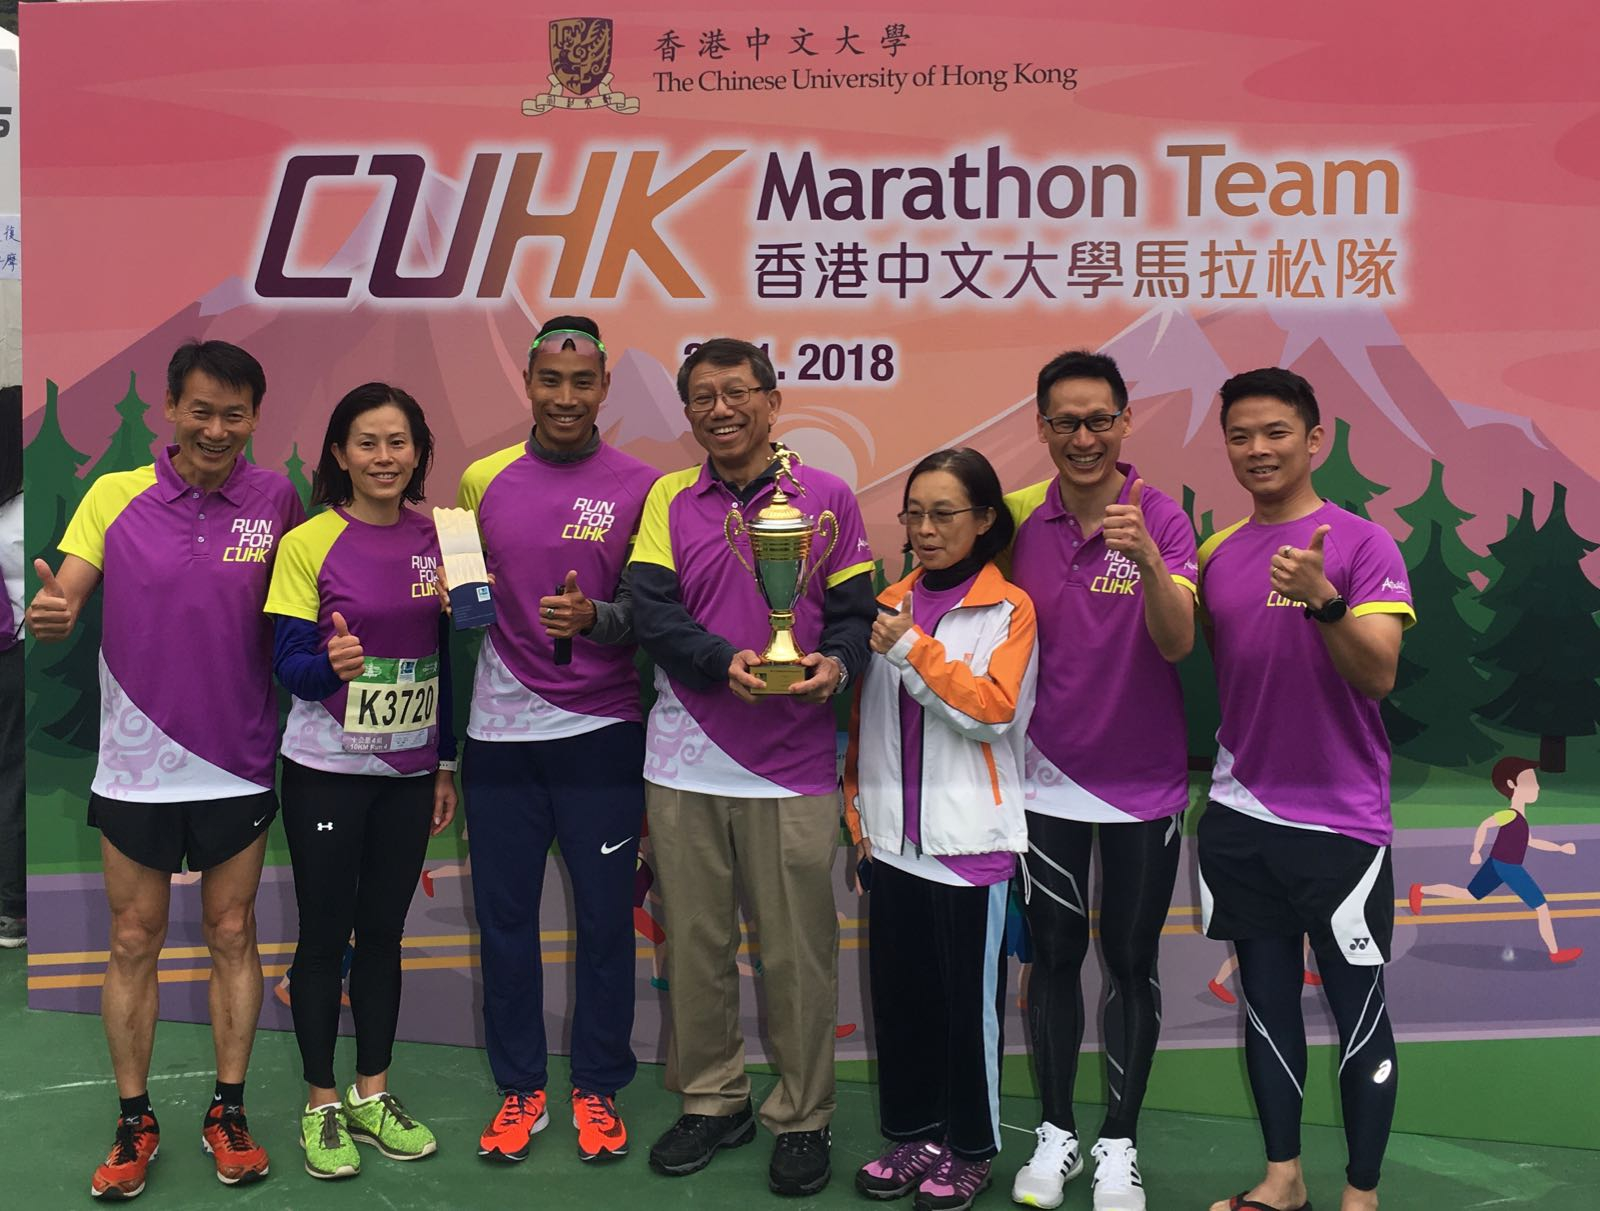 Professor Rocky S. Tuan and CUHK runners